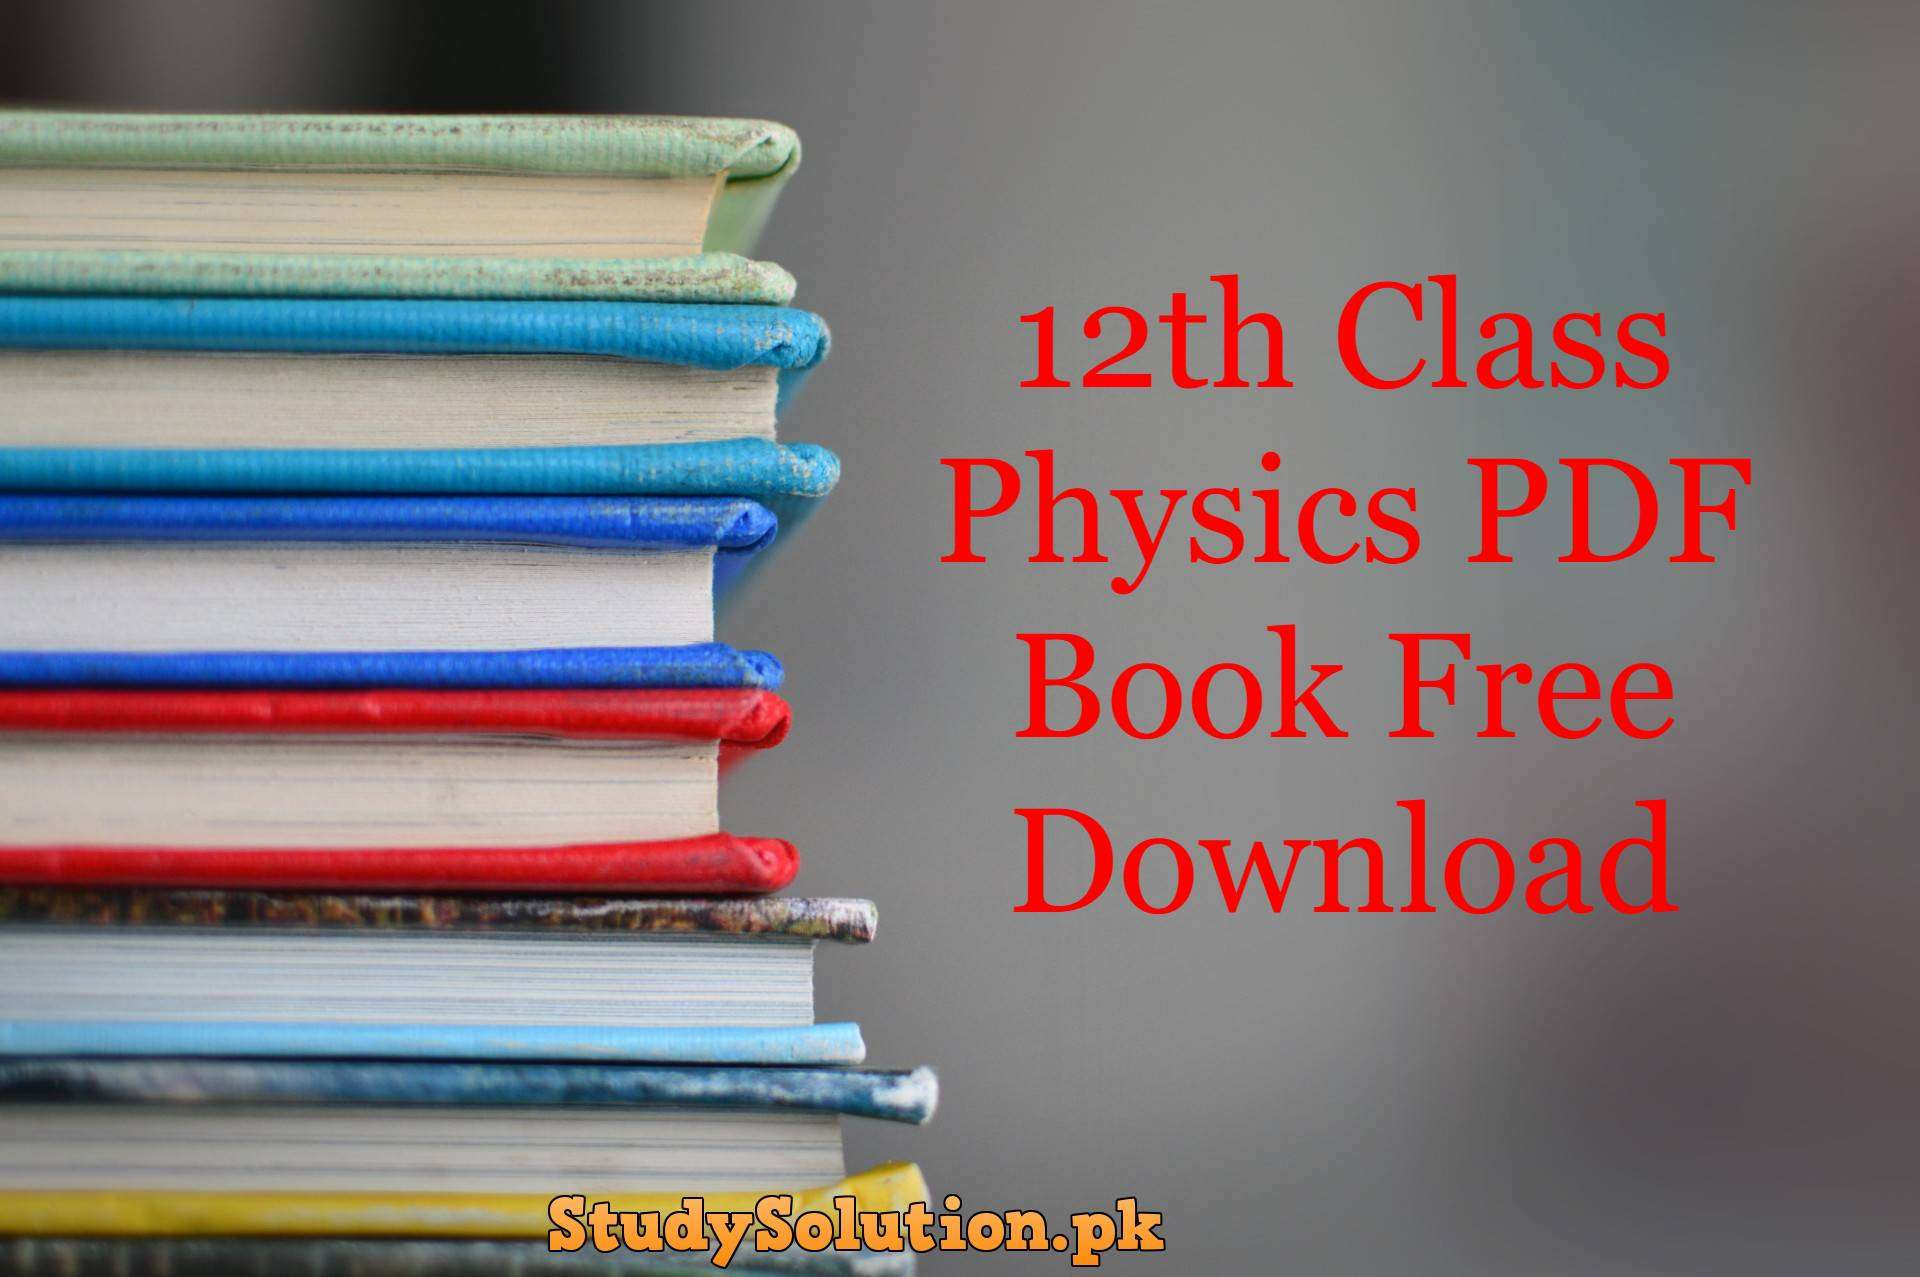 12th Class Physics PDF Book Free Download